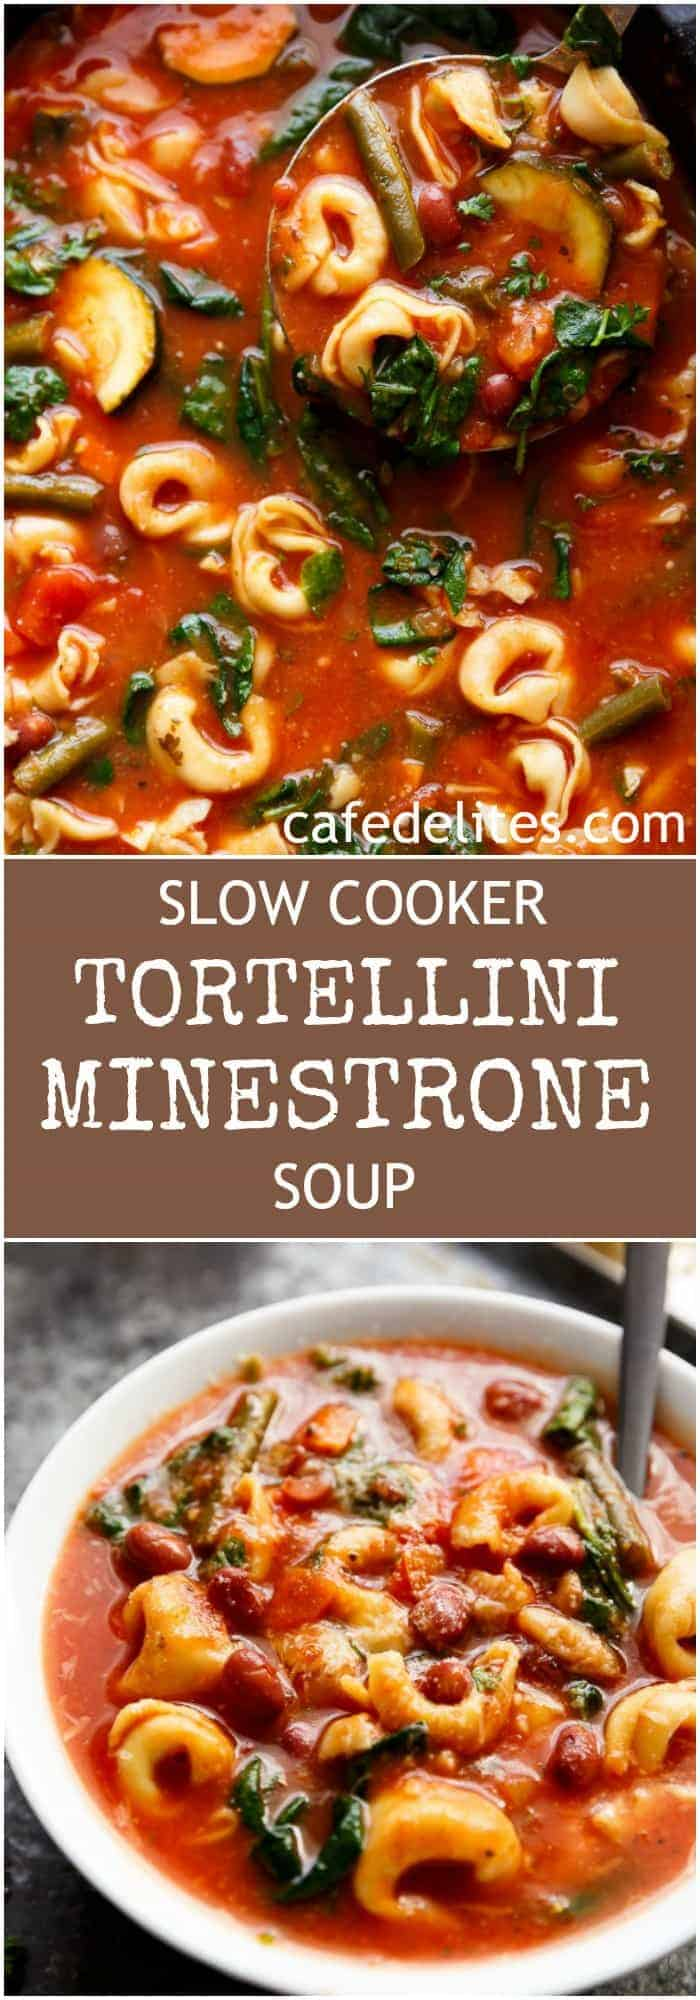 Slow Cooker Tortellini Minestrone Soup is a twist on the traditional minestrone, using tortellini instead of plain pasta! Delicious comfort food in a bowl! | https://cafedelites.com